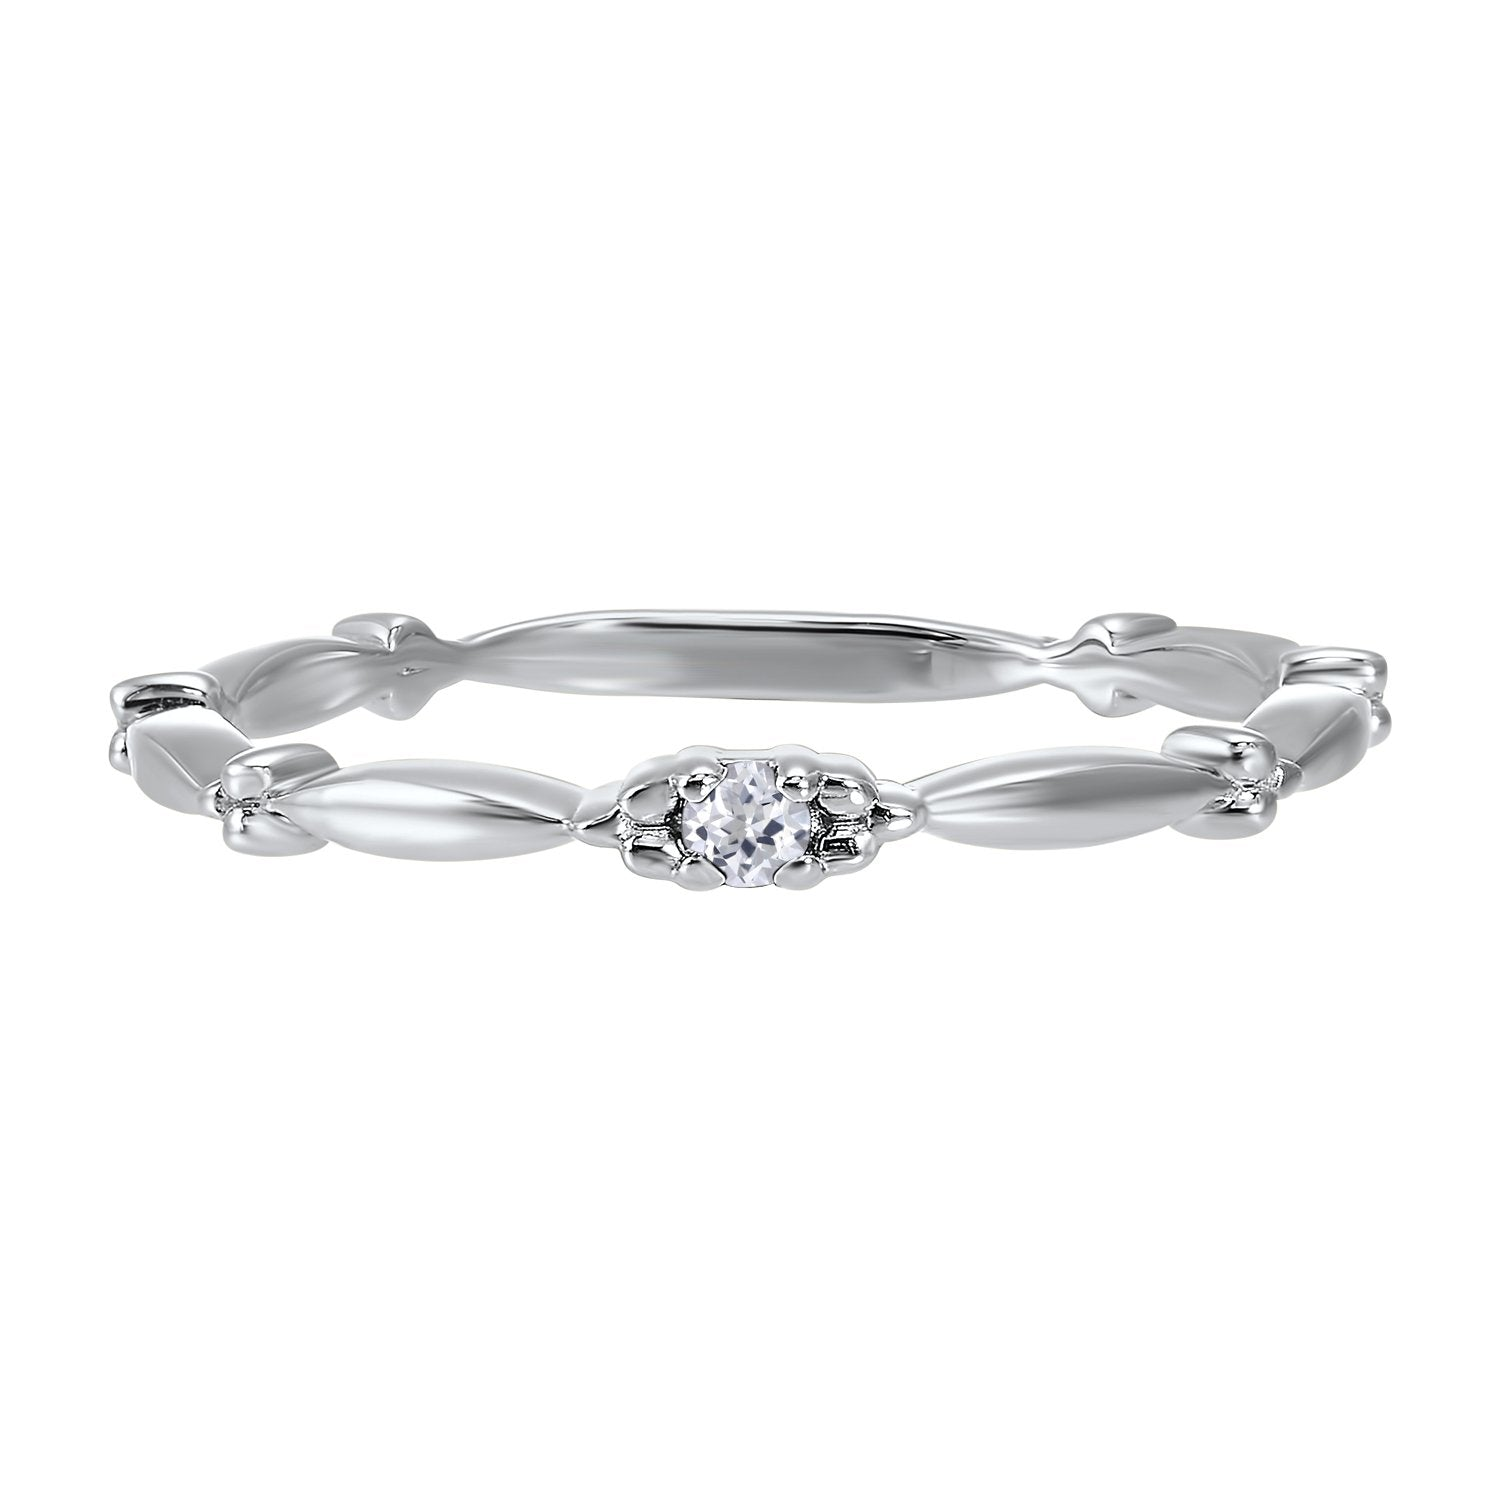 10K White Gold Stackable Prong White Topaz Band